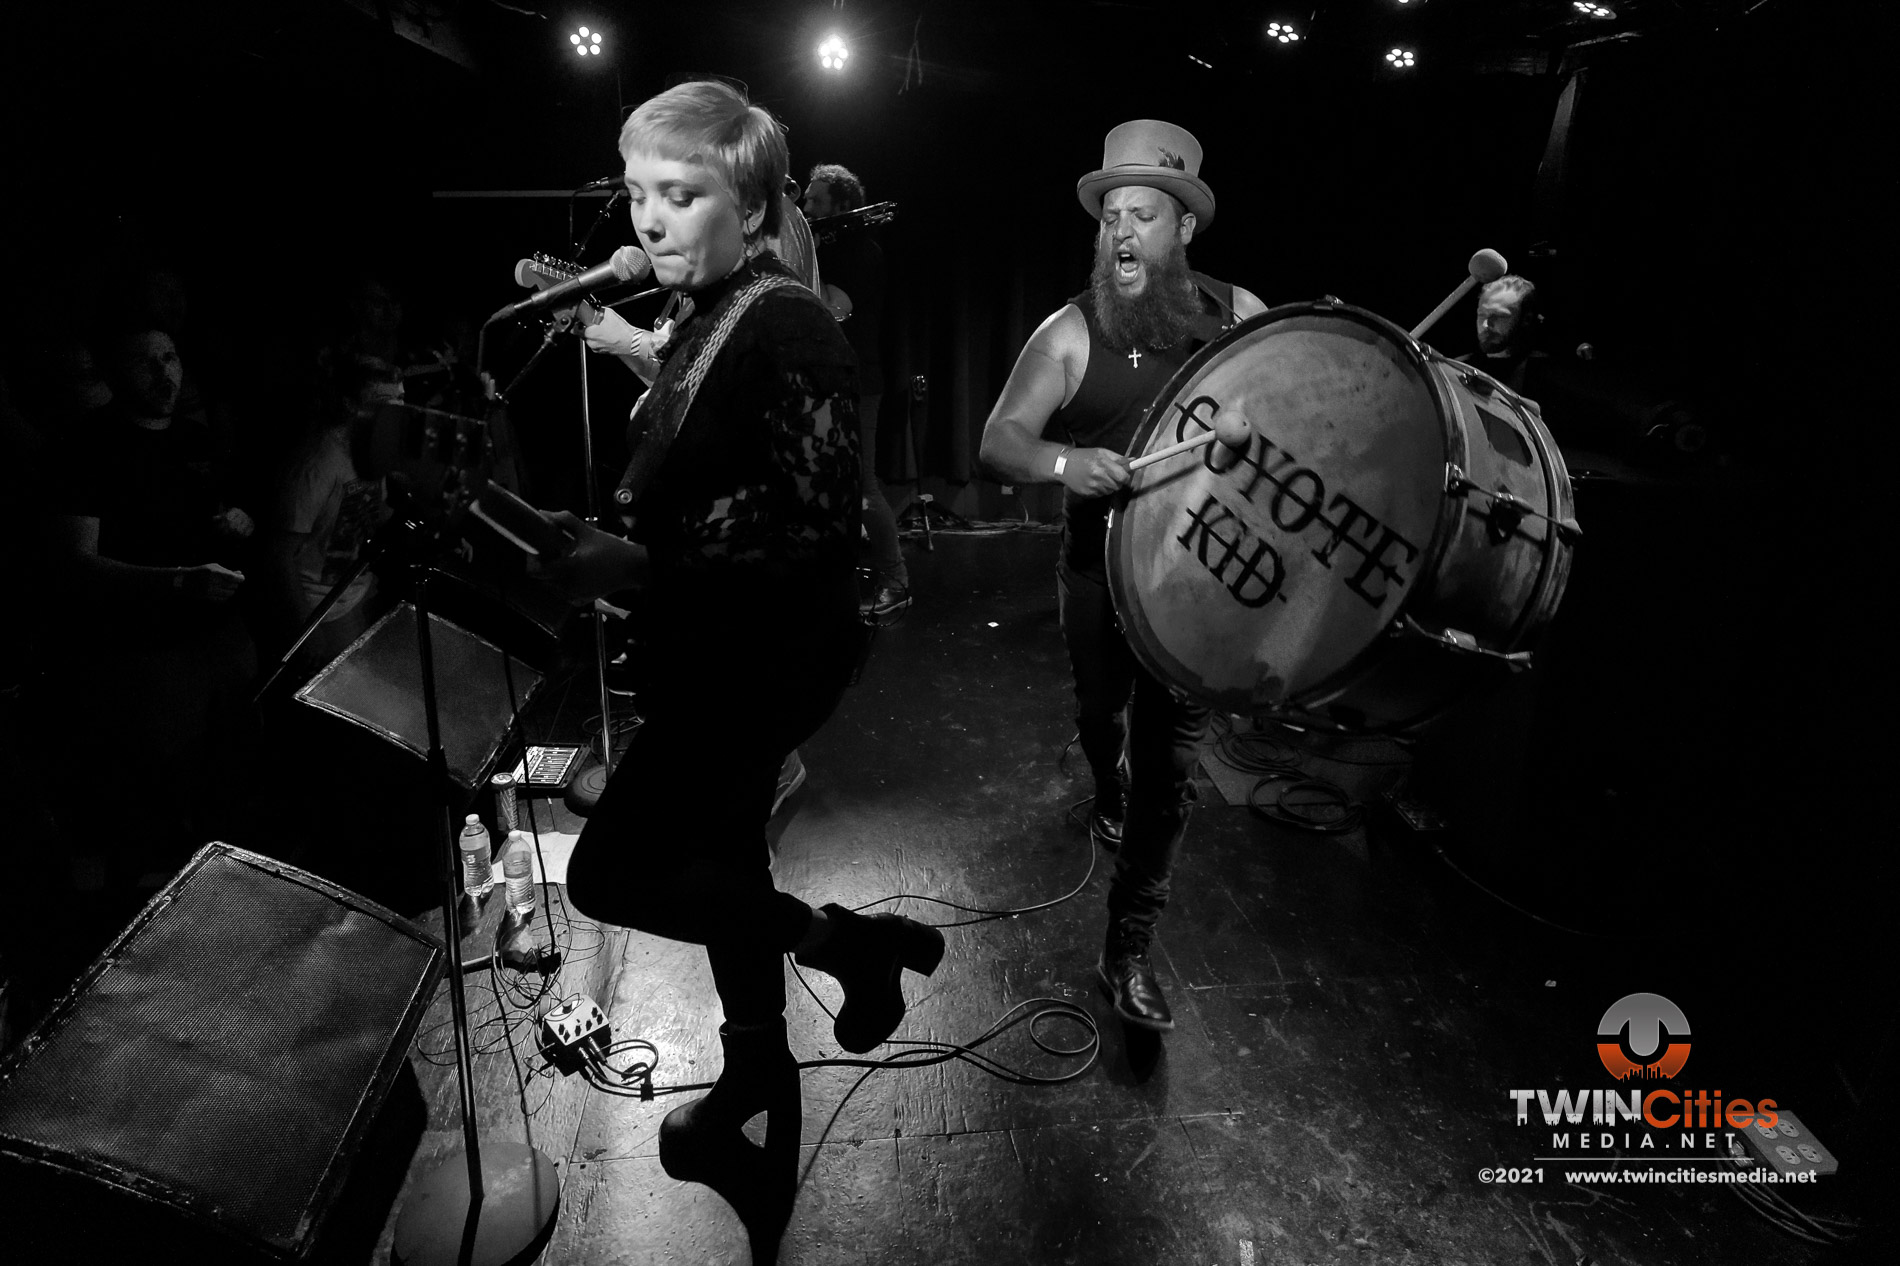 August 5, 2021 - Minneapolis, Minnesota, United States - Coyote Kid live in concert at 7th Street Entry  along with Careful Gaze and Happy Birthday Mr. Baskets as the openers.  (Photo by Seth Steffenhagen/Steffenhagen Photography)